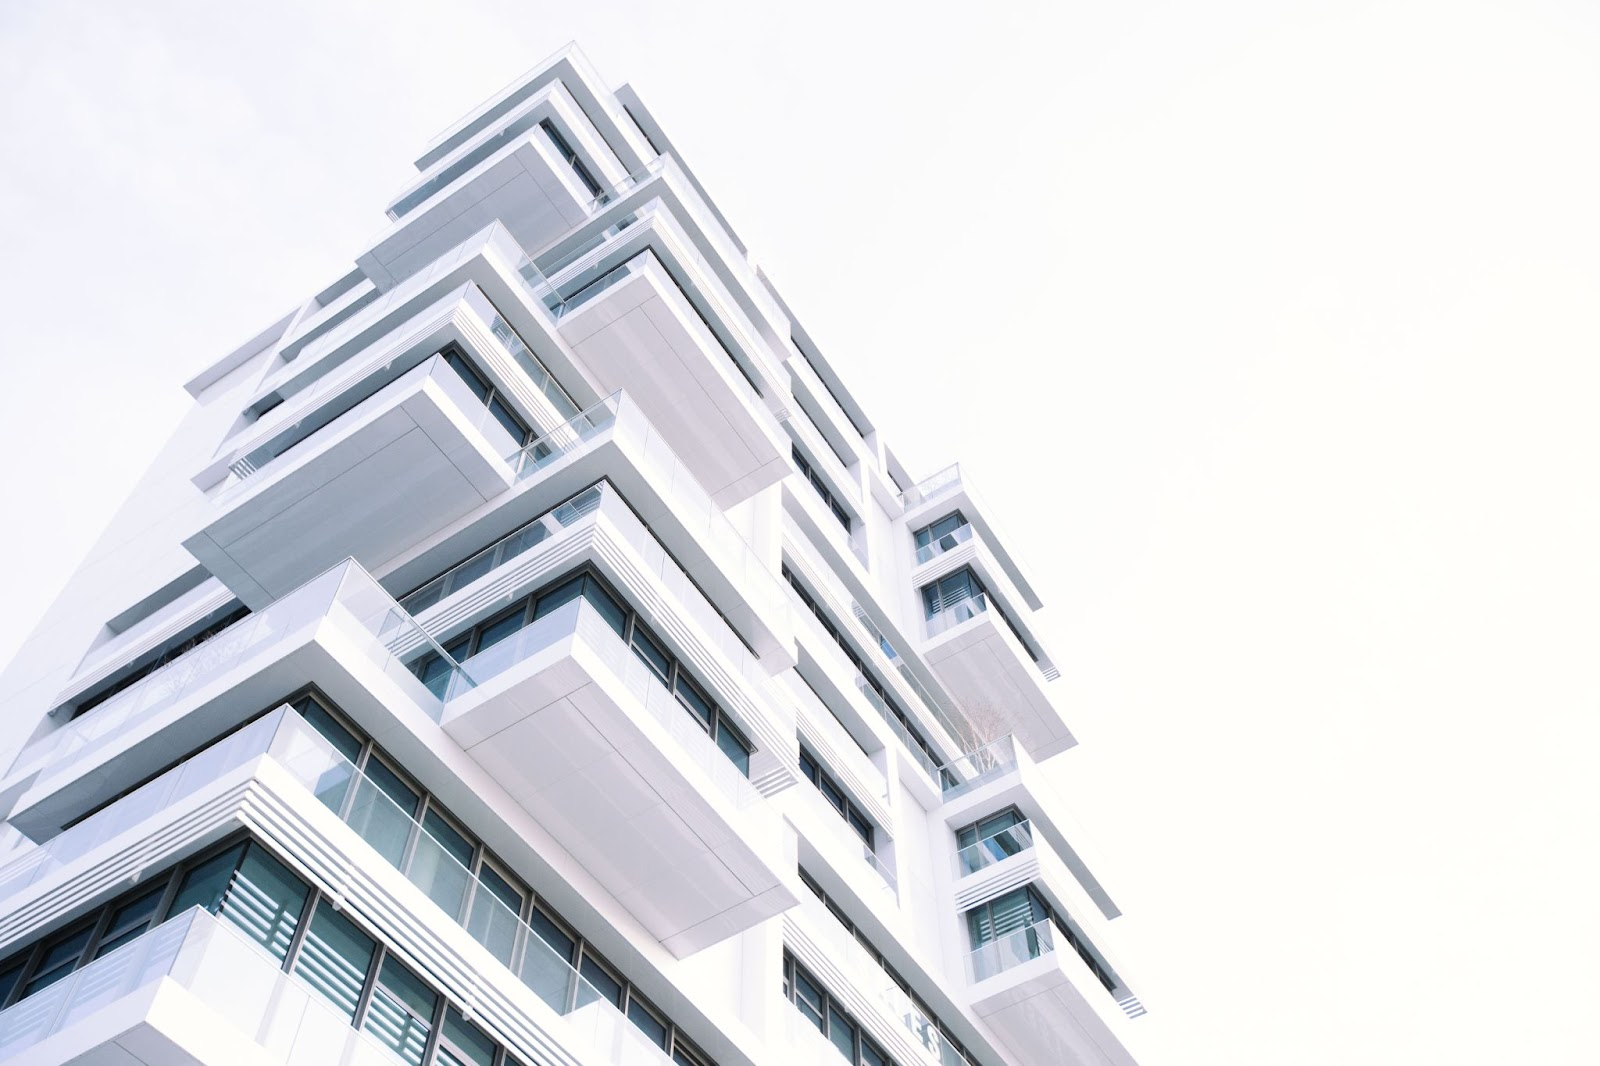 6 Ways to Market Your Commercial Real Estate Property